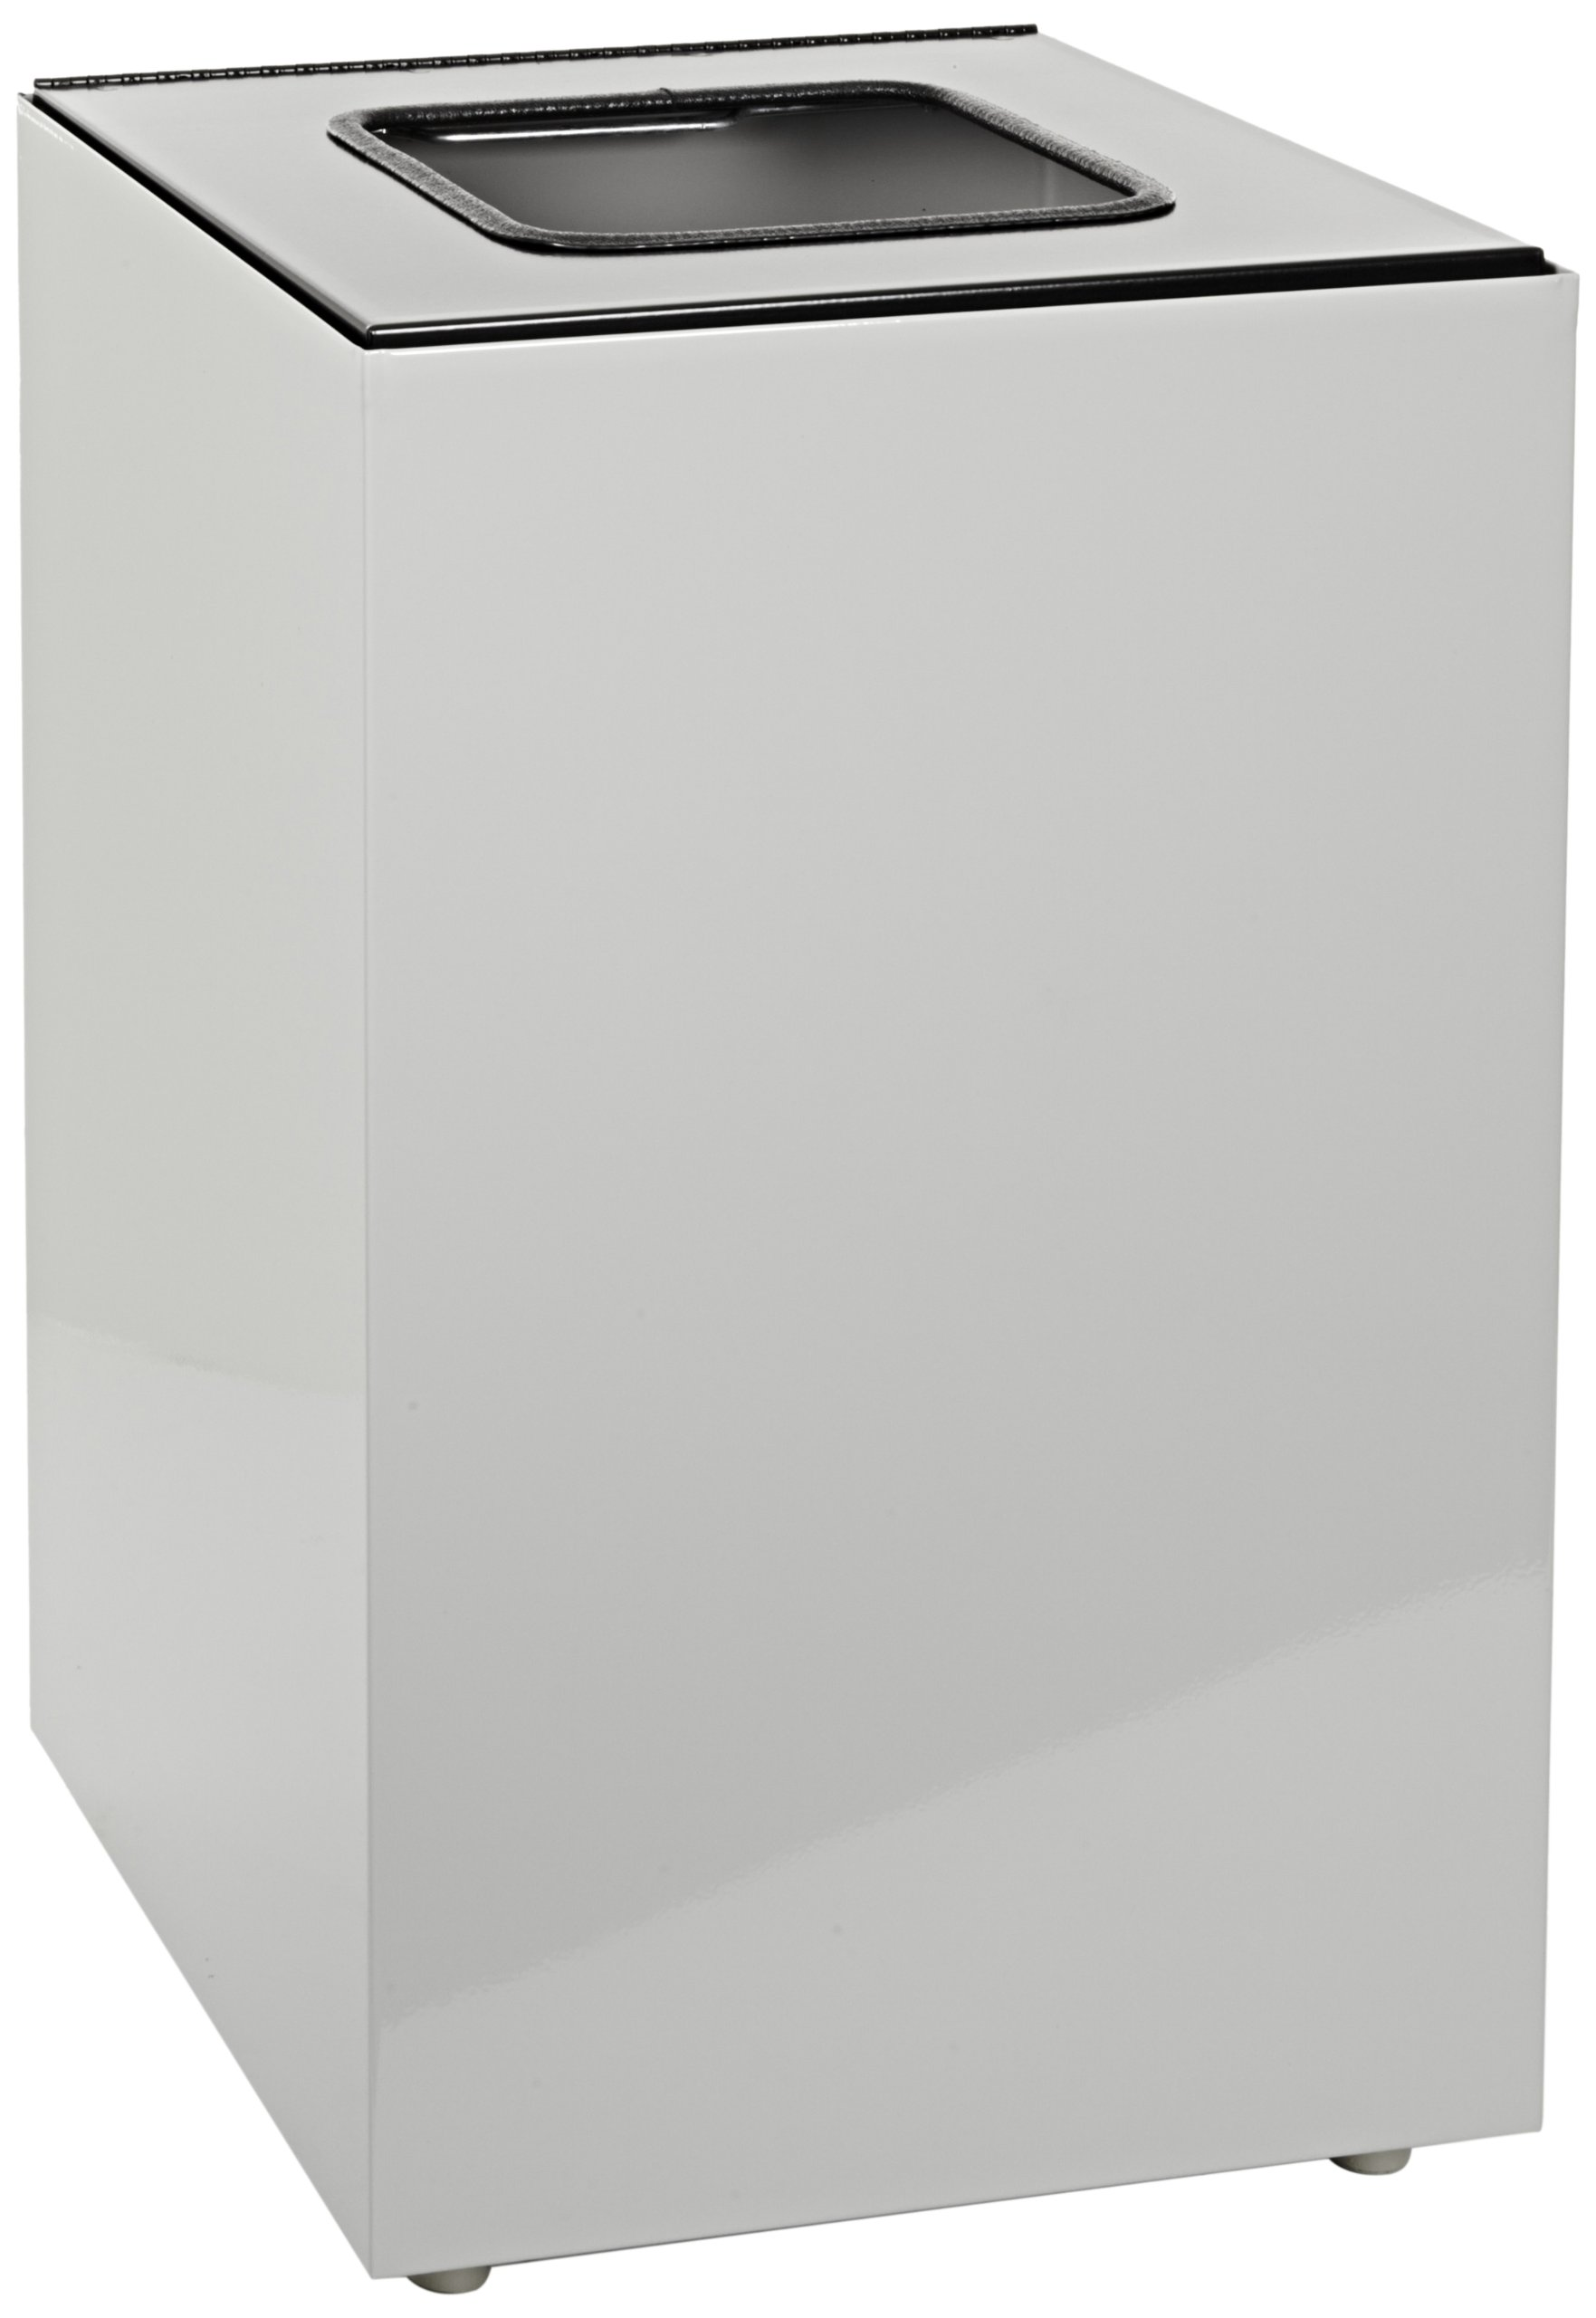 Witt Industries 24GC03-SL Steel 24-Gallon Geo Cube Recycling Container, Square Opening, Legend Waste, Square, 15'' Width x 15'' Depth x 24'' Height, Slate